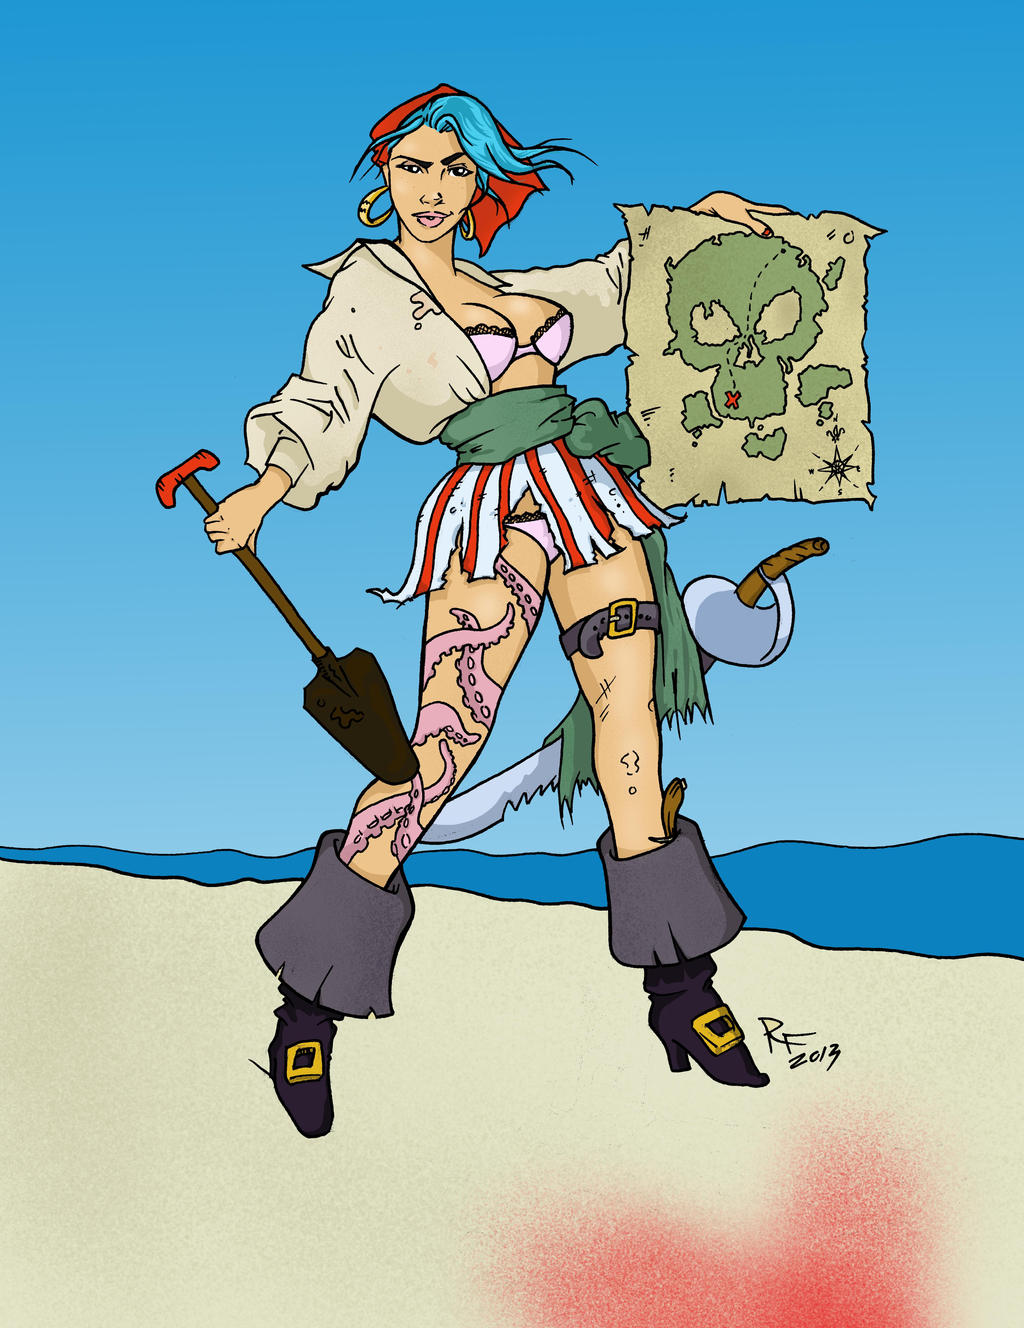 Pirate girl pin up drawing - photo#13